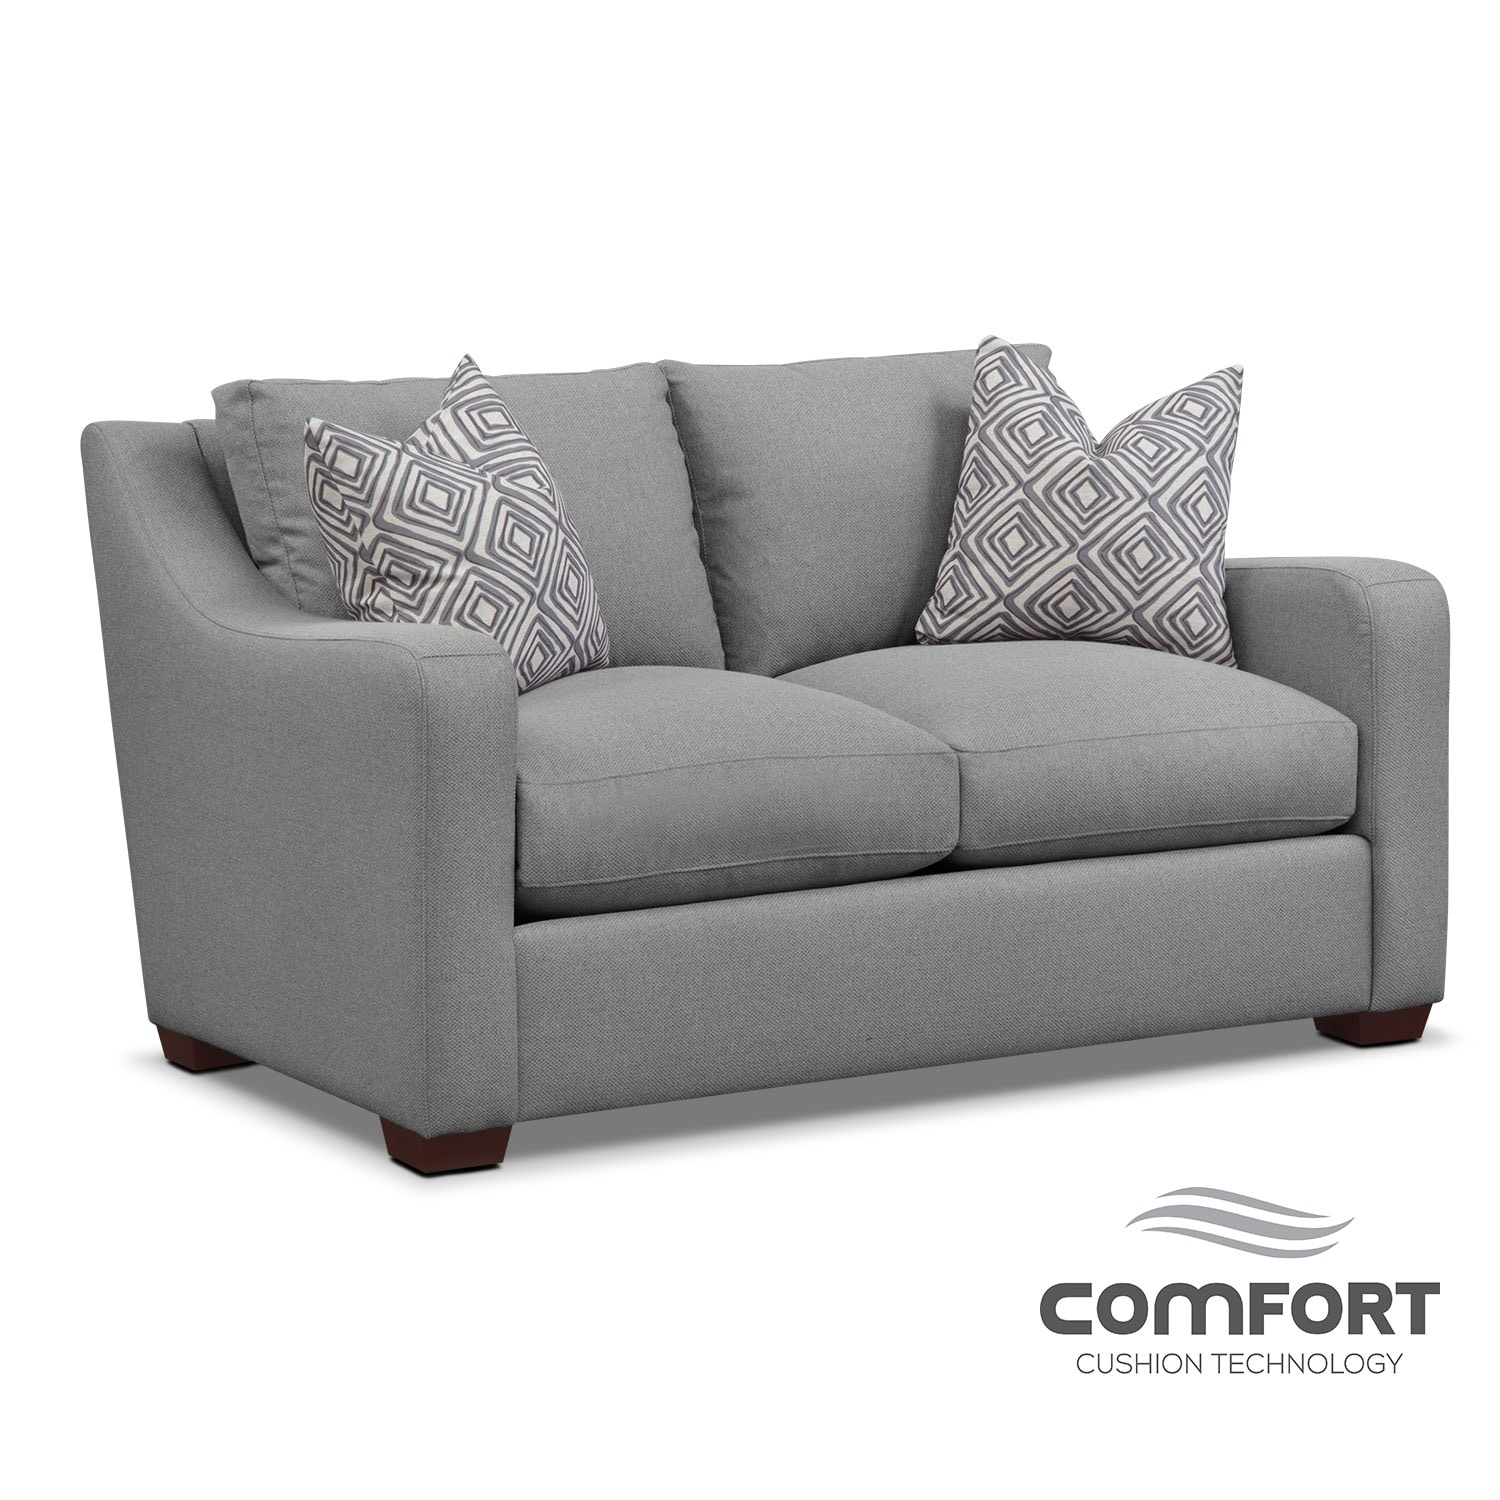 Jules Comfort Loveseat- Gray